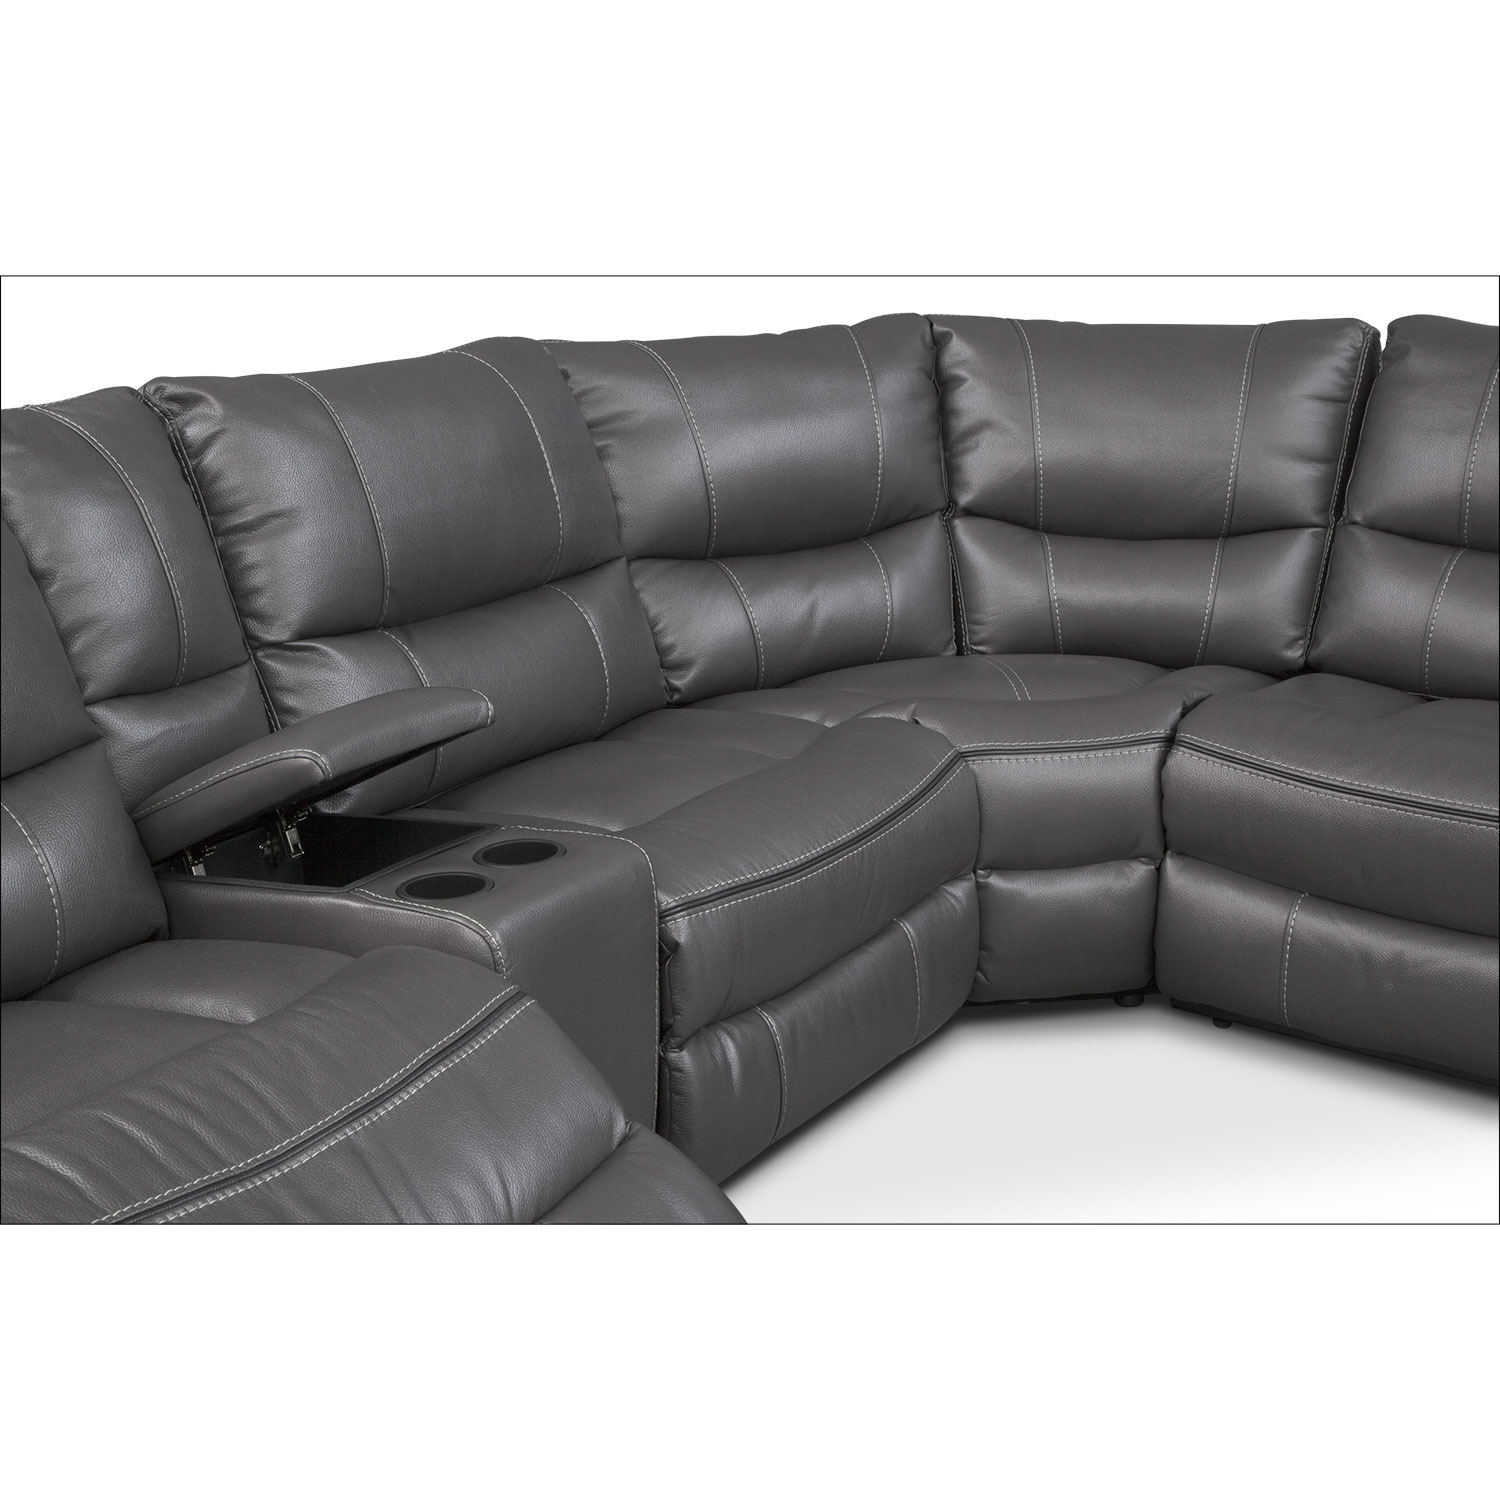 Orlando 6-Piece Power Reclining Sectional With 1 Stationary Chair in Orlando Sectional Sofas (Image 5 of 10)